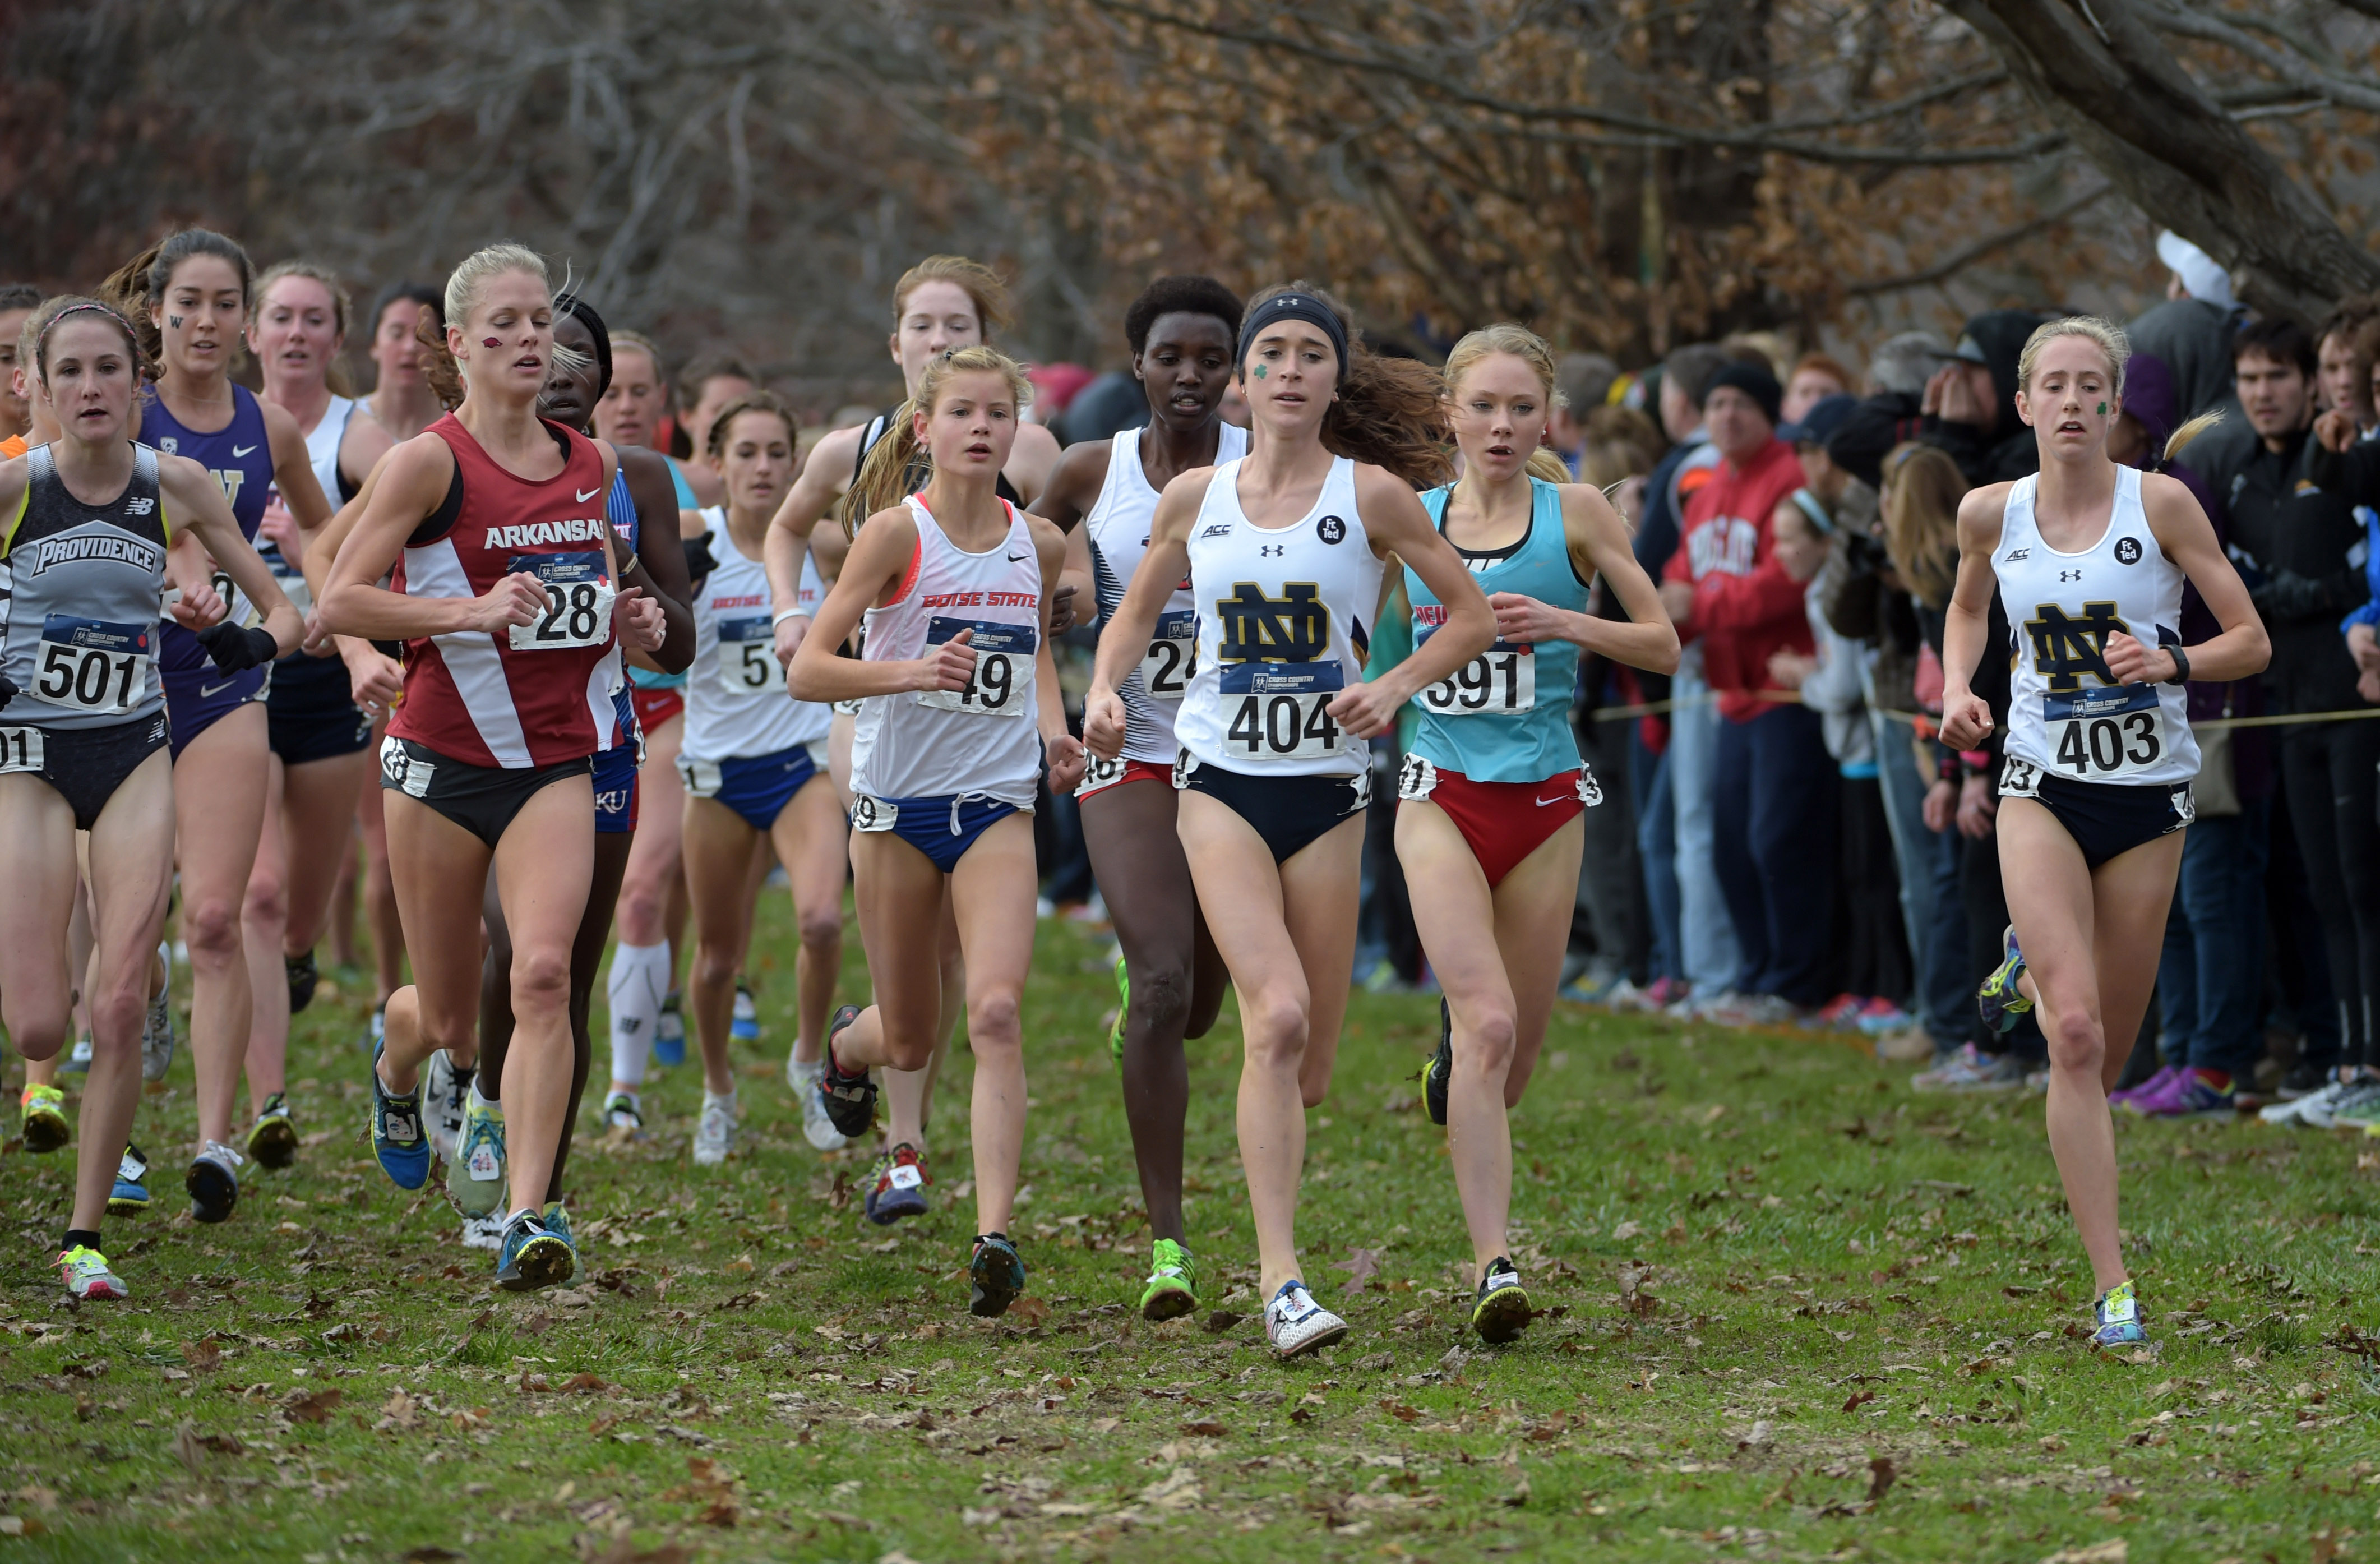 Molly Seidel of Notre Dame (404) wins the womens race in 19:28 during the 2015 NCAA cross country championships at Tom Sawyer Park. From left: Dominique Scott of Arkansas (28) Allie Ostrander of Boise State (49) Seidel and Alice Wright of New Mexico Alice Wright (391) and Anna Rohrer of Notre Dame (403). (Photo: Kirby Lee-USA TODAY Sports)